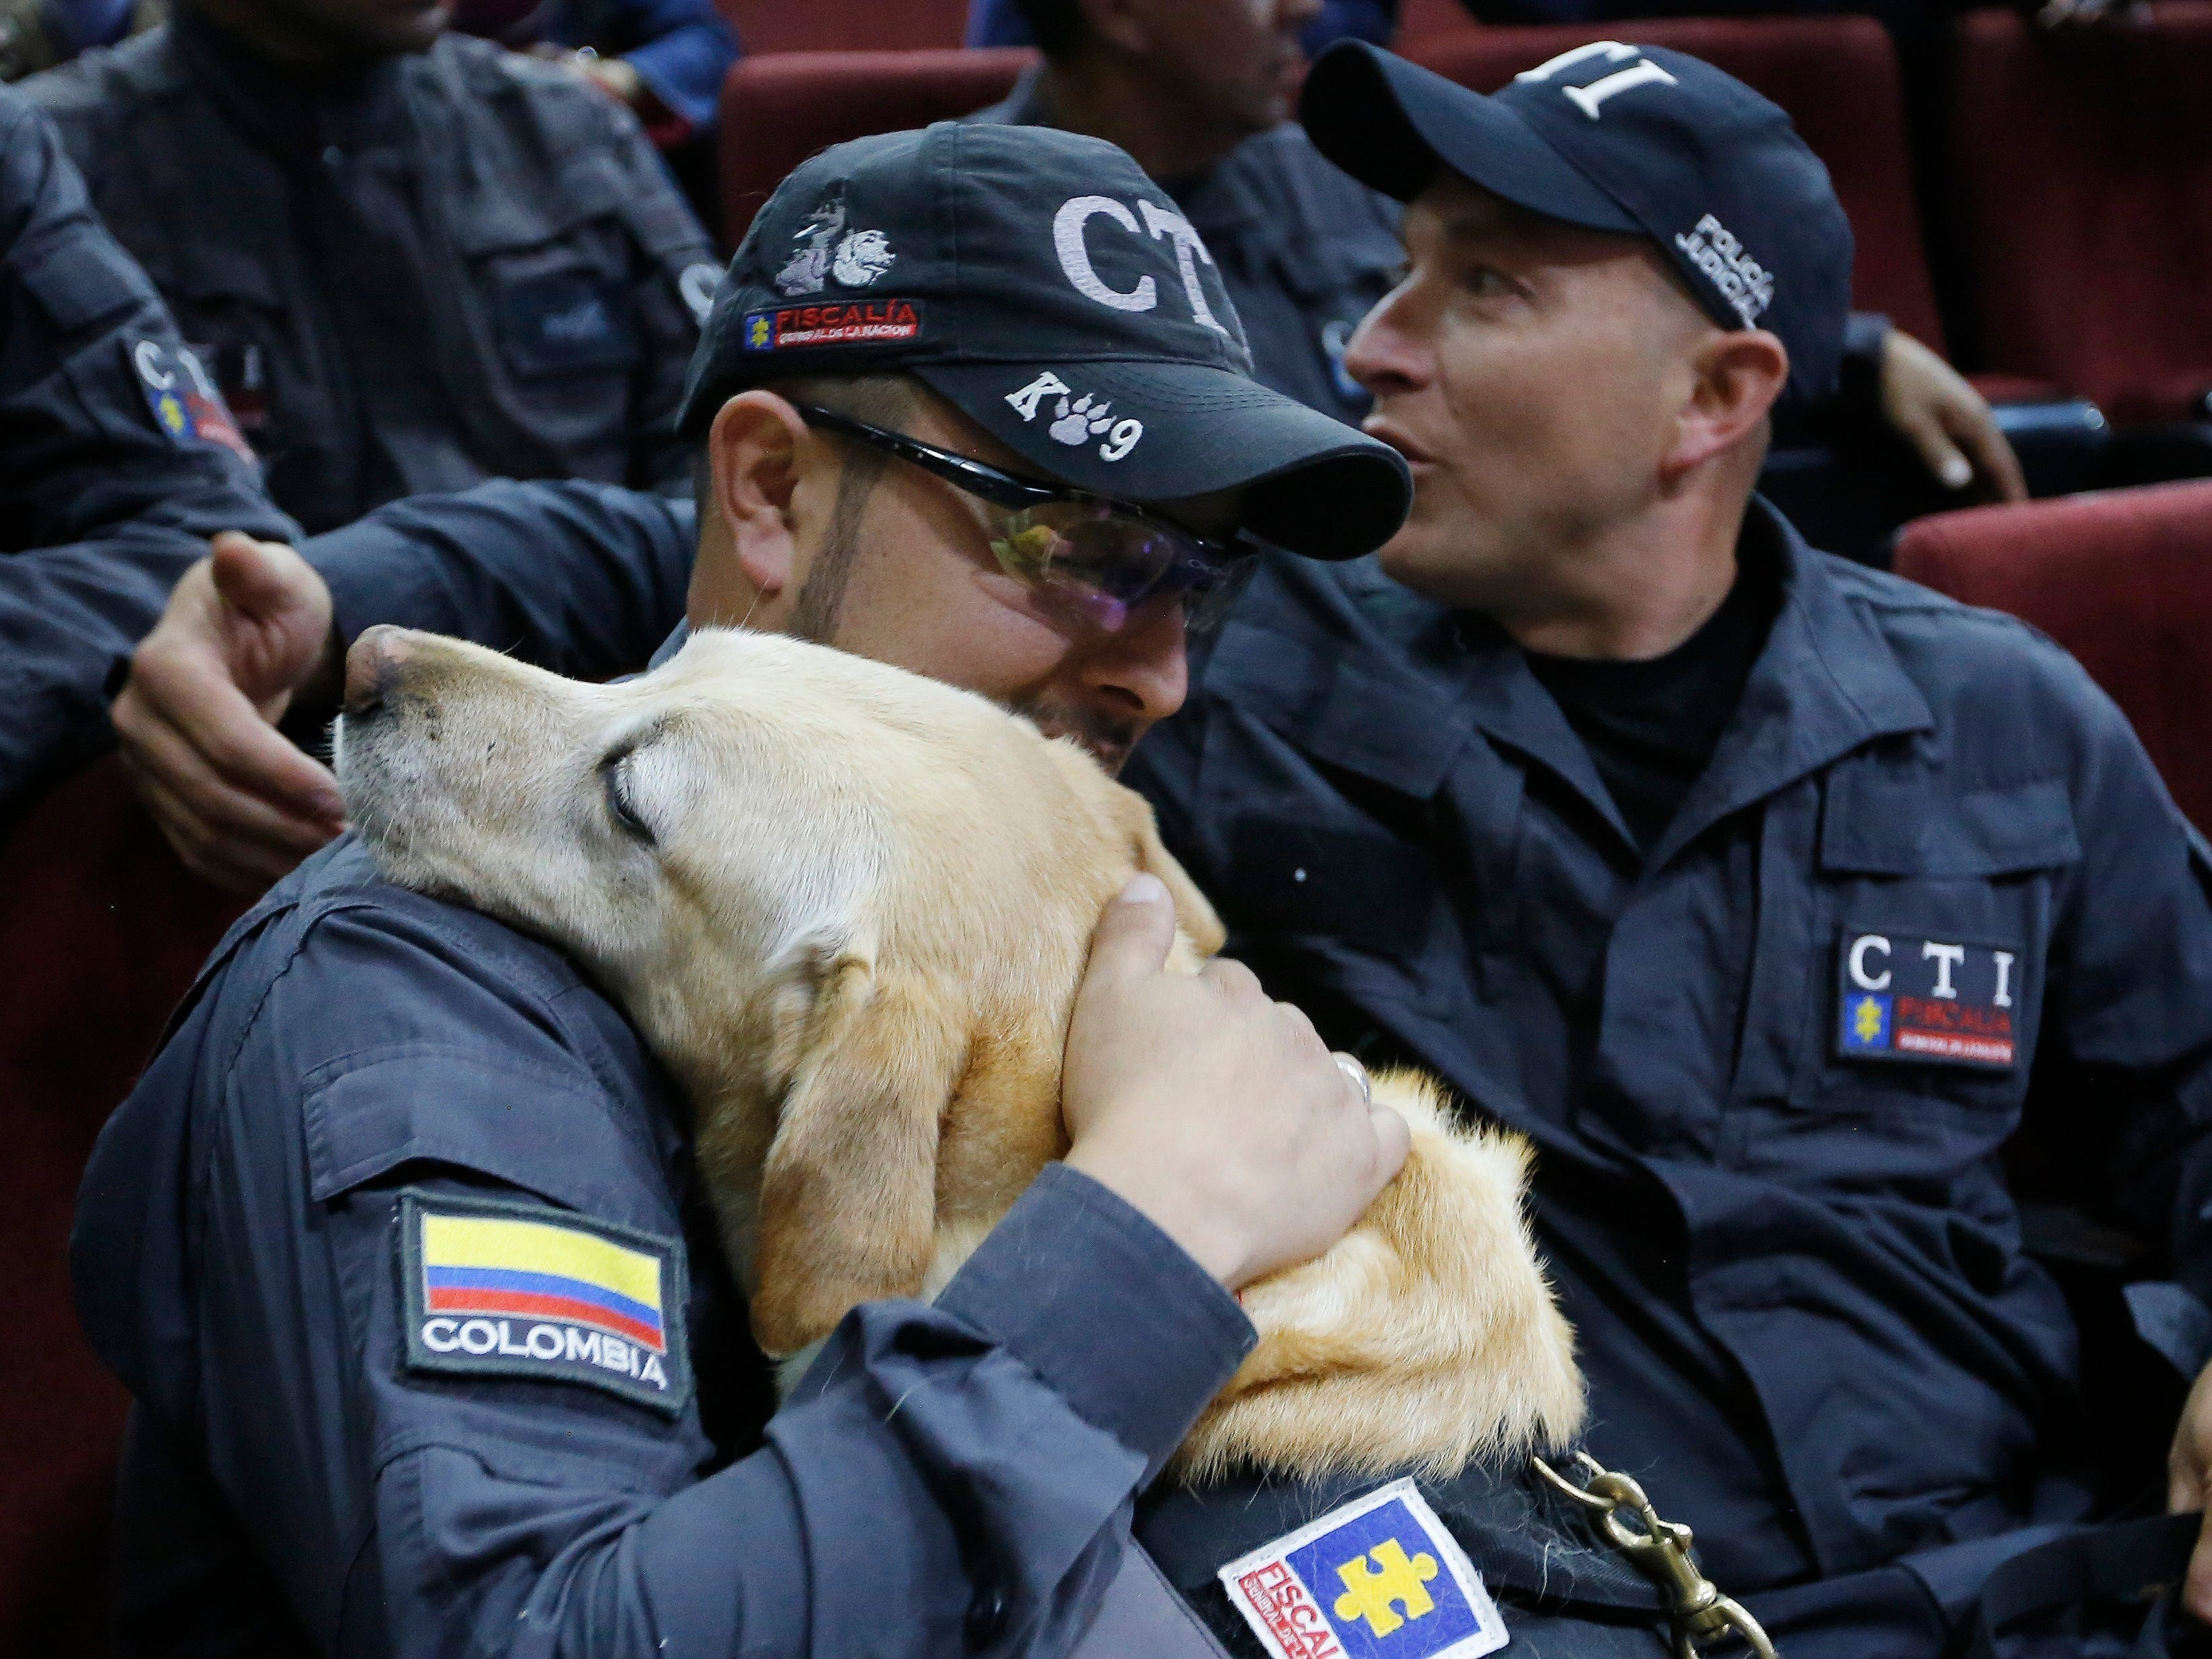 Handler Juan Carlos Rojas embraces sniffer dog Katy during a retirement ceremony for 14 sniffer dogs in Bogota, Colombia, Friday, Sept. 21, 2018. The retiring dogs were presented with medals and certificates in a ceremony attended by dozens of their human comrades. The chief prosecutor plans to put the dogs up for adoption, placing them with families that will help them to live out their retirement years in peace.